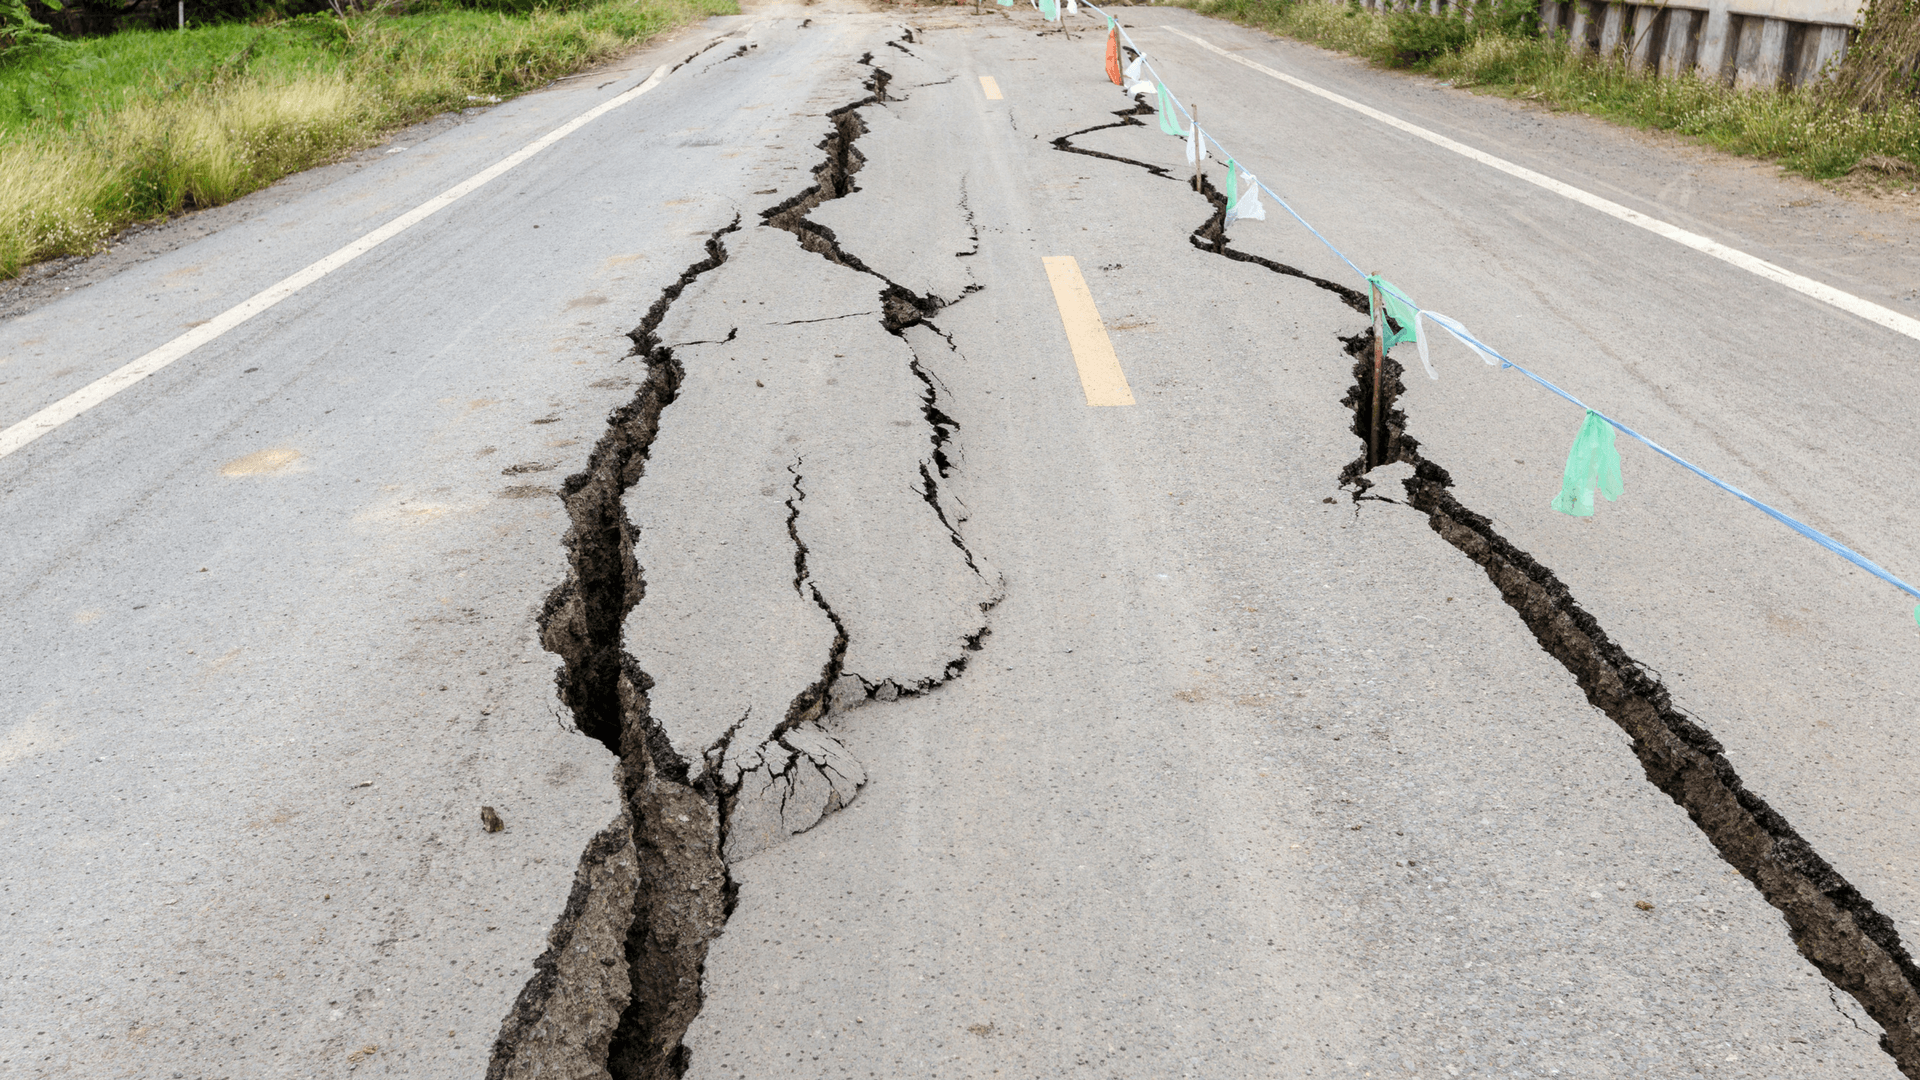 071117-Blog-Earthquake Safety Tips for You and Your Community (1).png